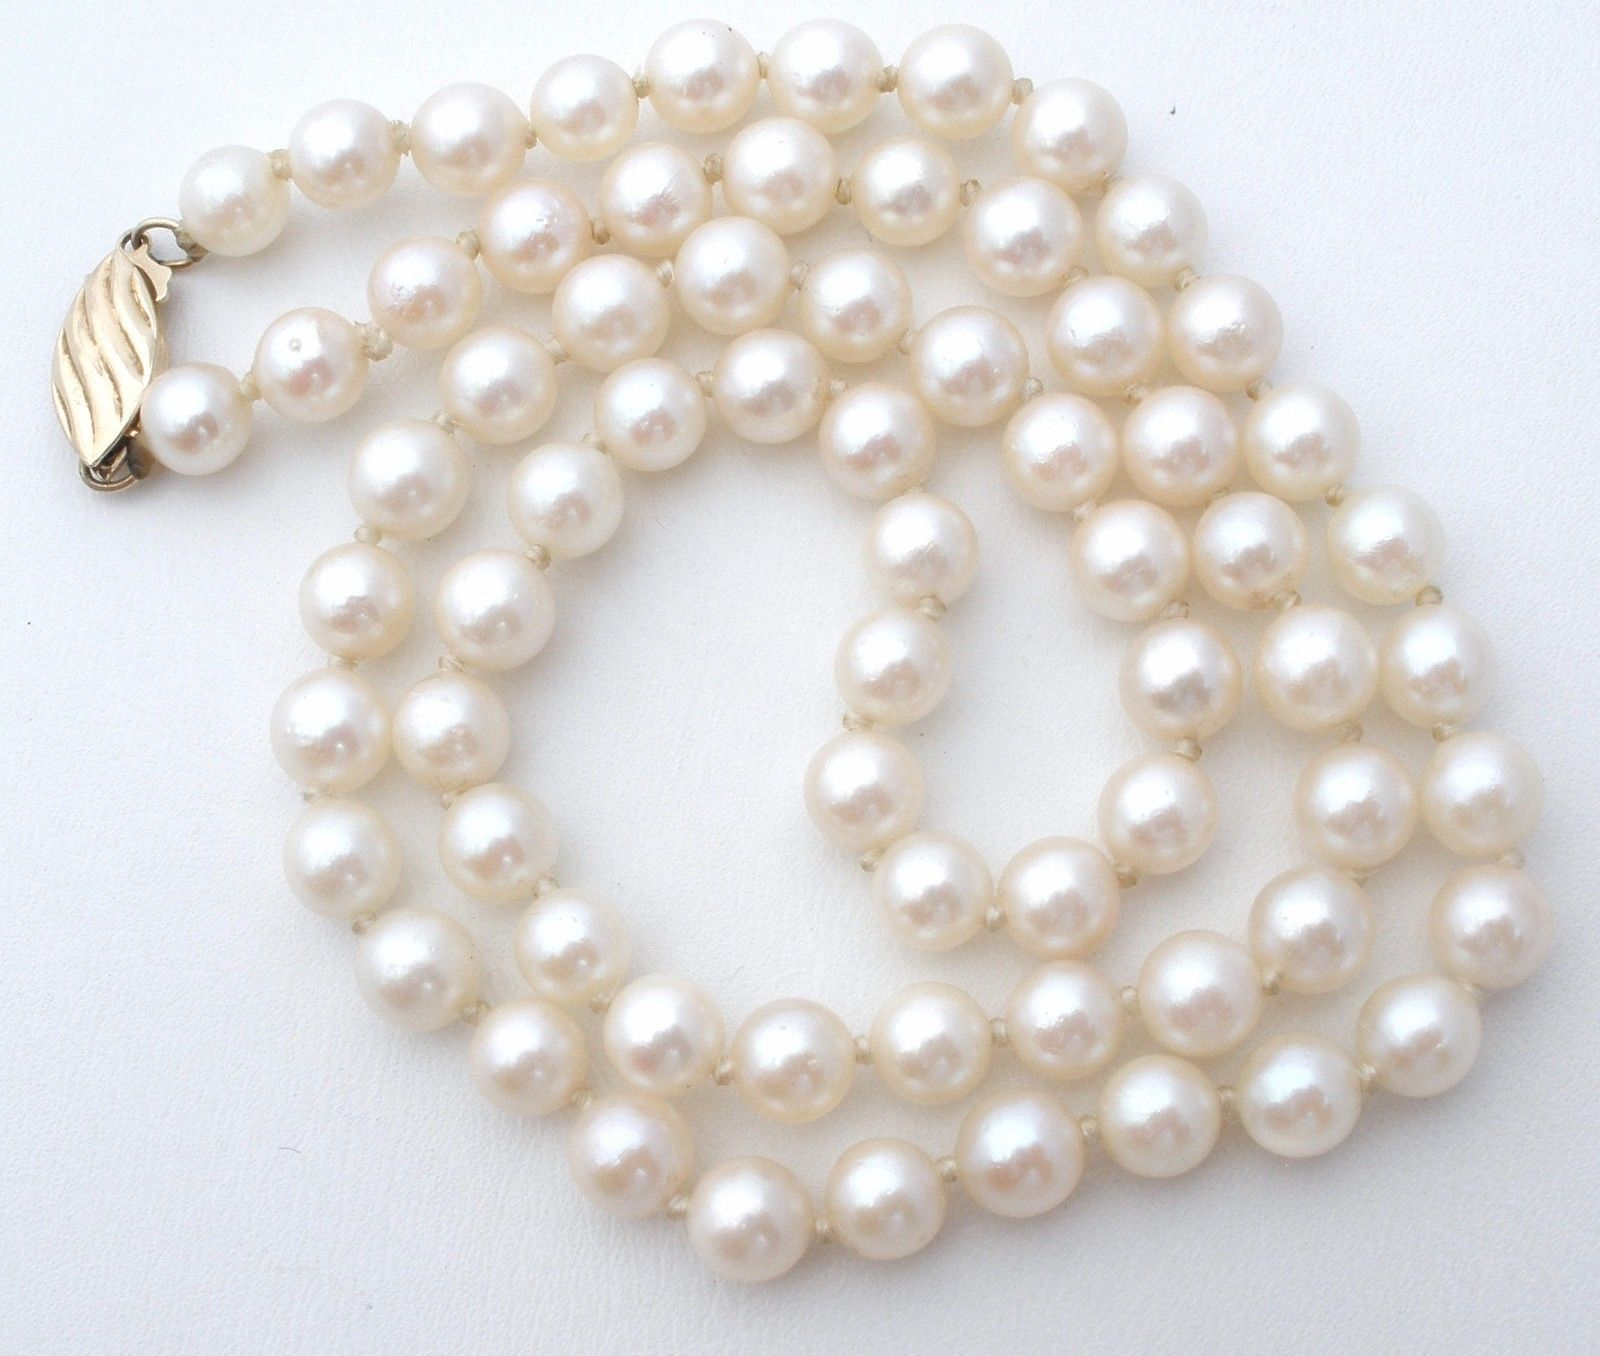 Genuine pearl necklace 14k gold clasp hand knotted strand 17 genuine pearl necklace 14k gold clasp hand knotted strand 17 wedding jewelry jewelry aloadofball Choice Image